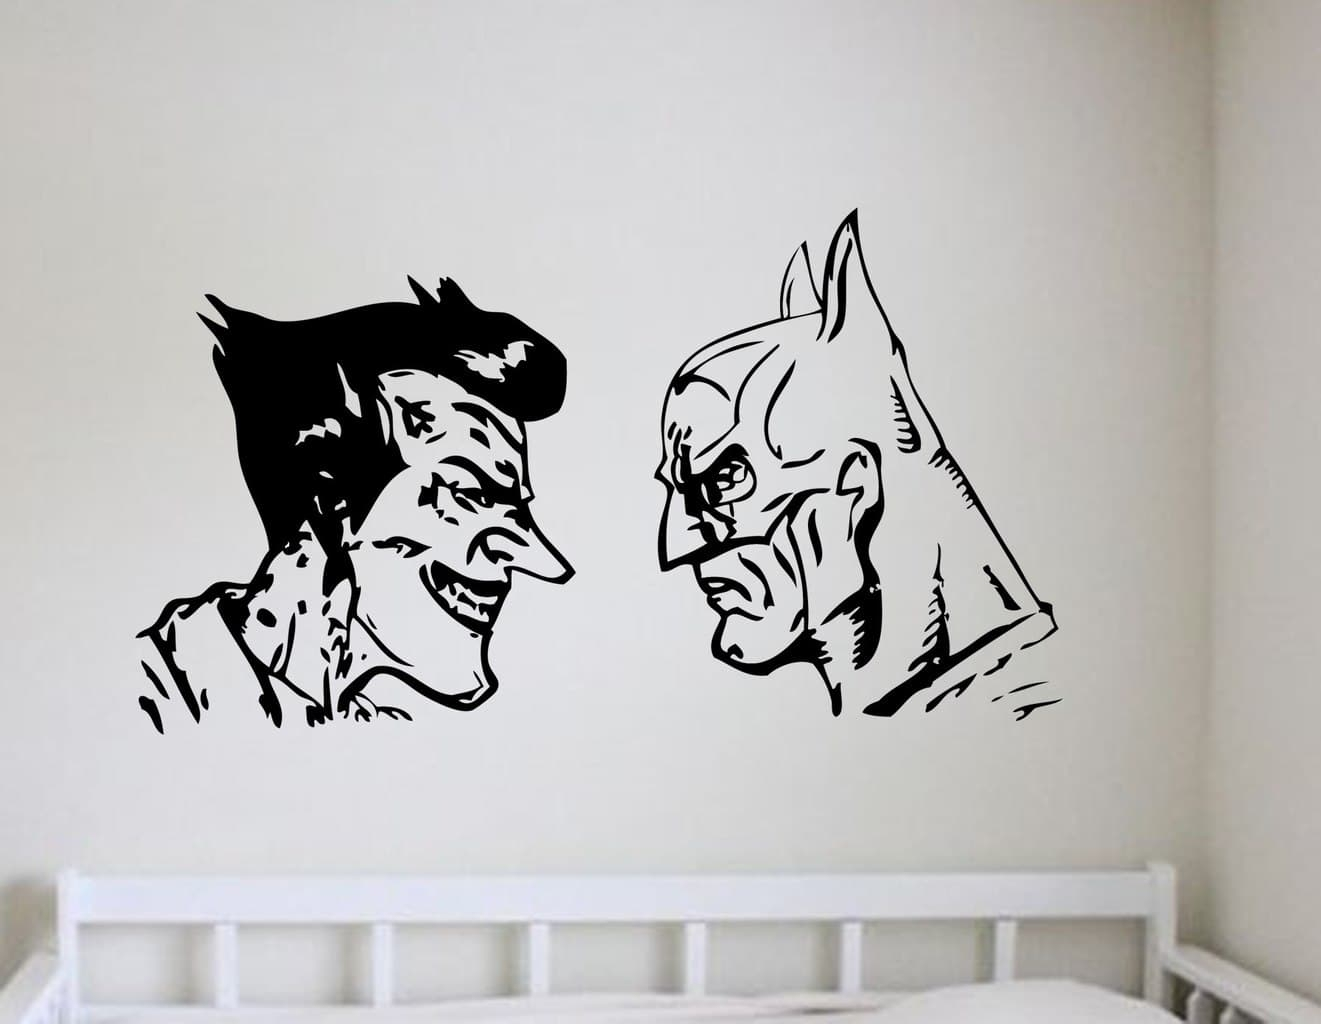 Batman And Joker Wall Art Decal | Wall Decal | Wall Art For Latest Joker Wall Art (Gallery 2 of 20)